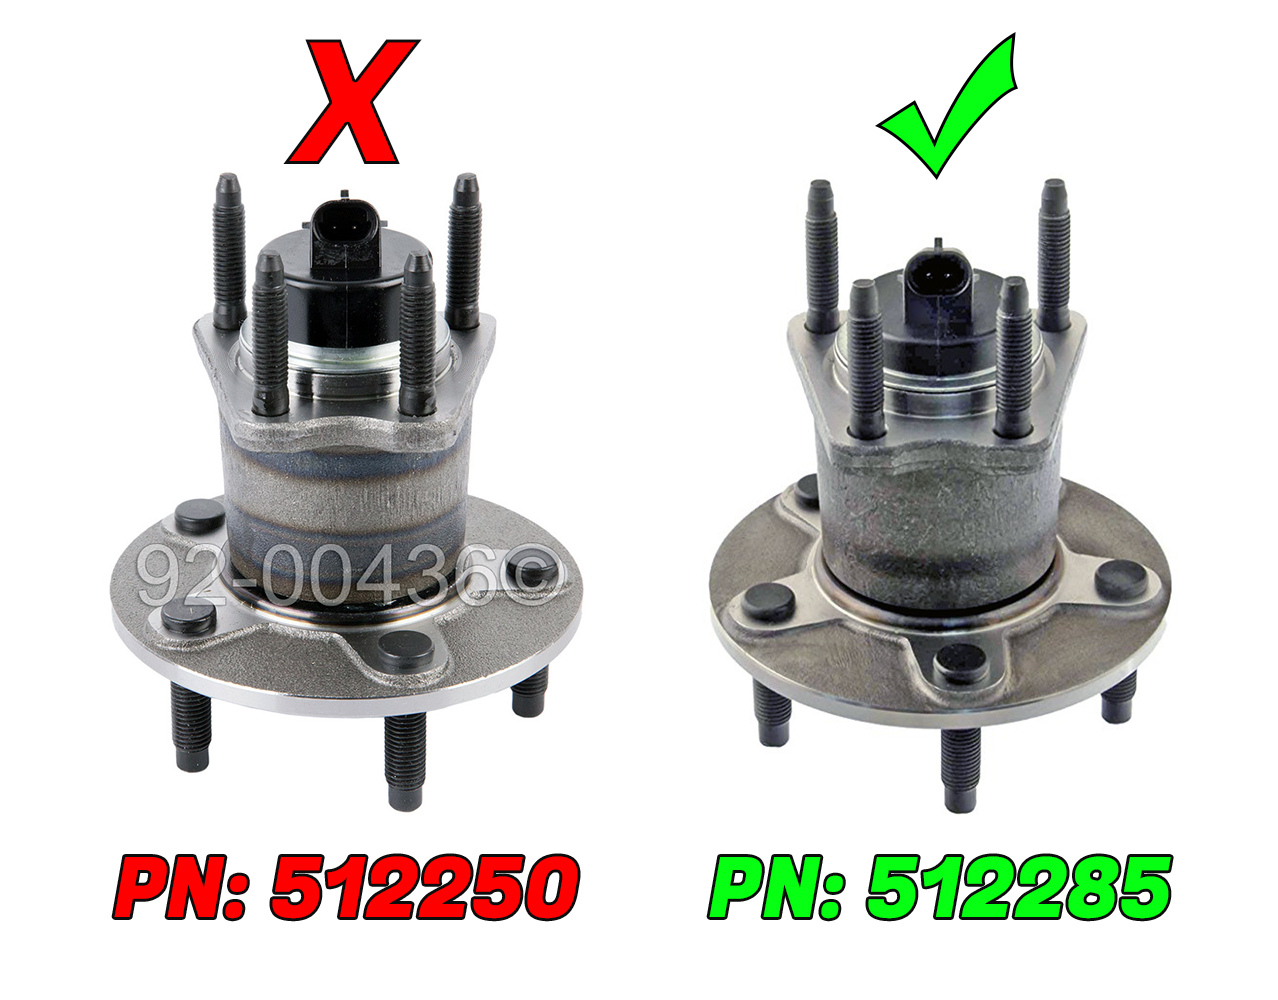 abs hubs compared.jpg